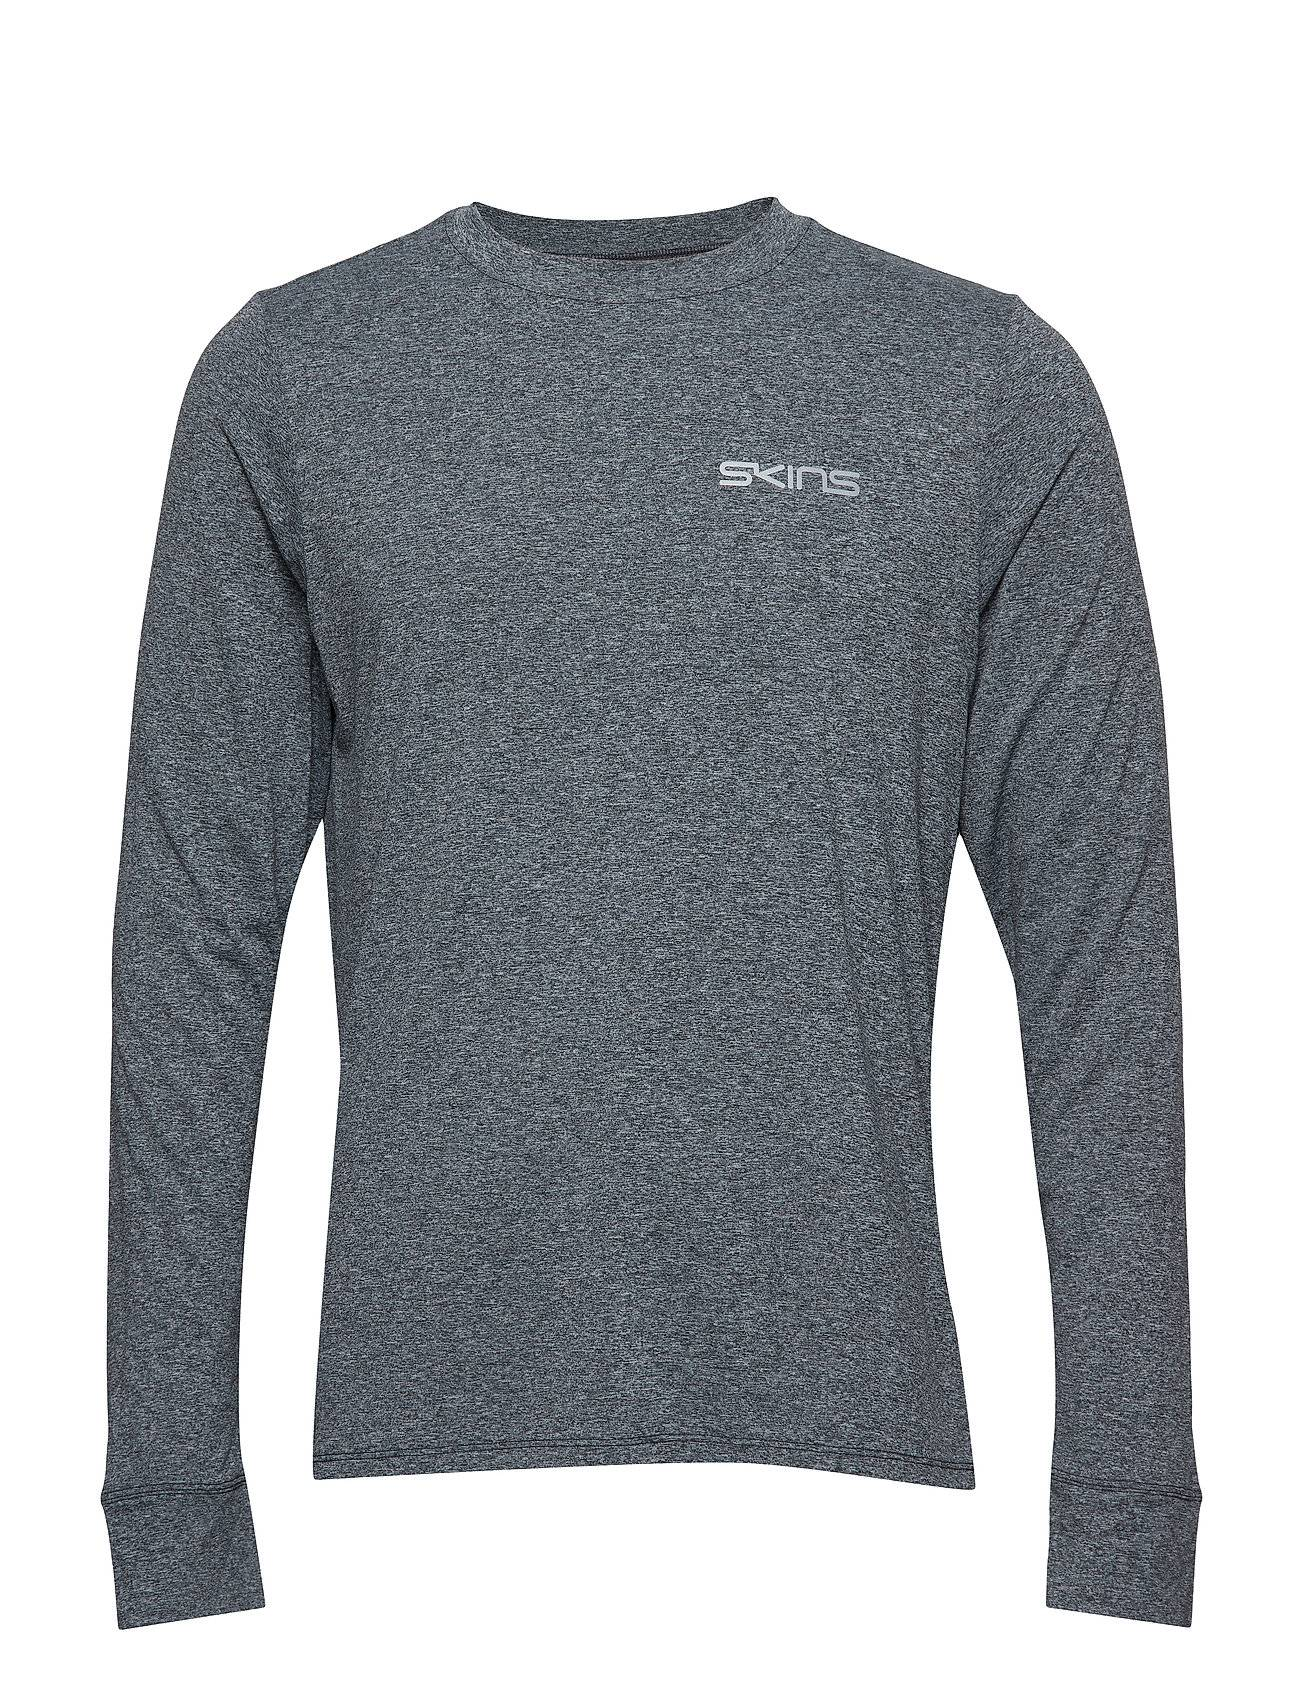 Skins Activewear Bergmar Mens Active Top L/S Round Neck T-shirts Long-sleeved Harmaa Skins